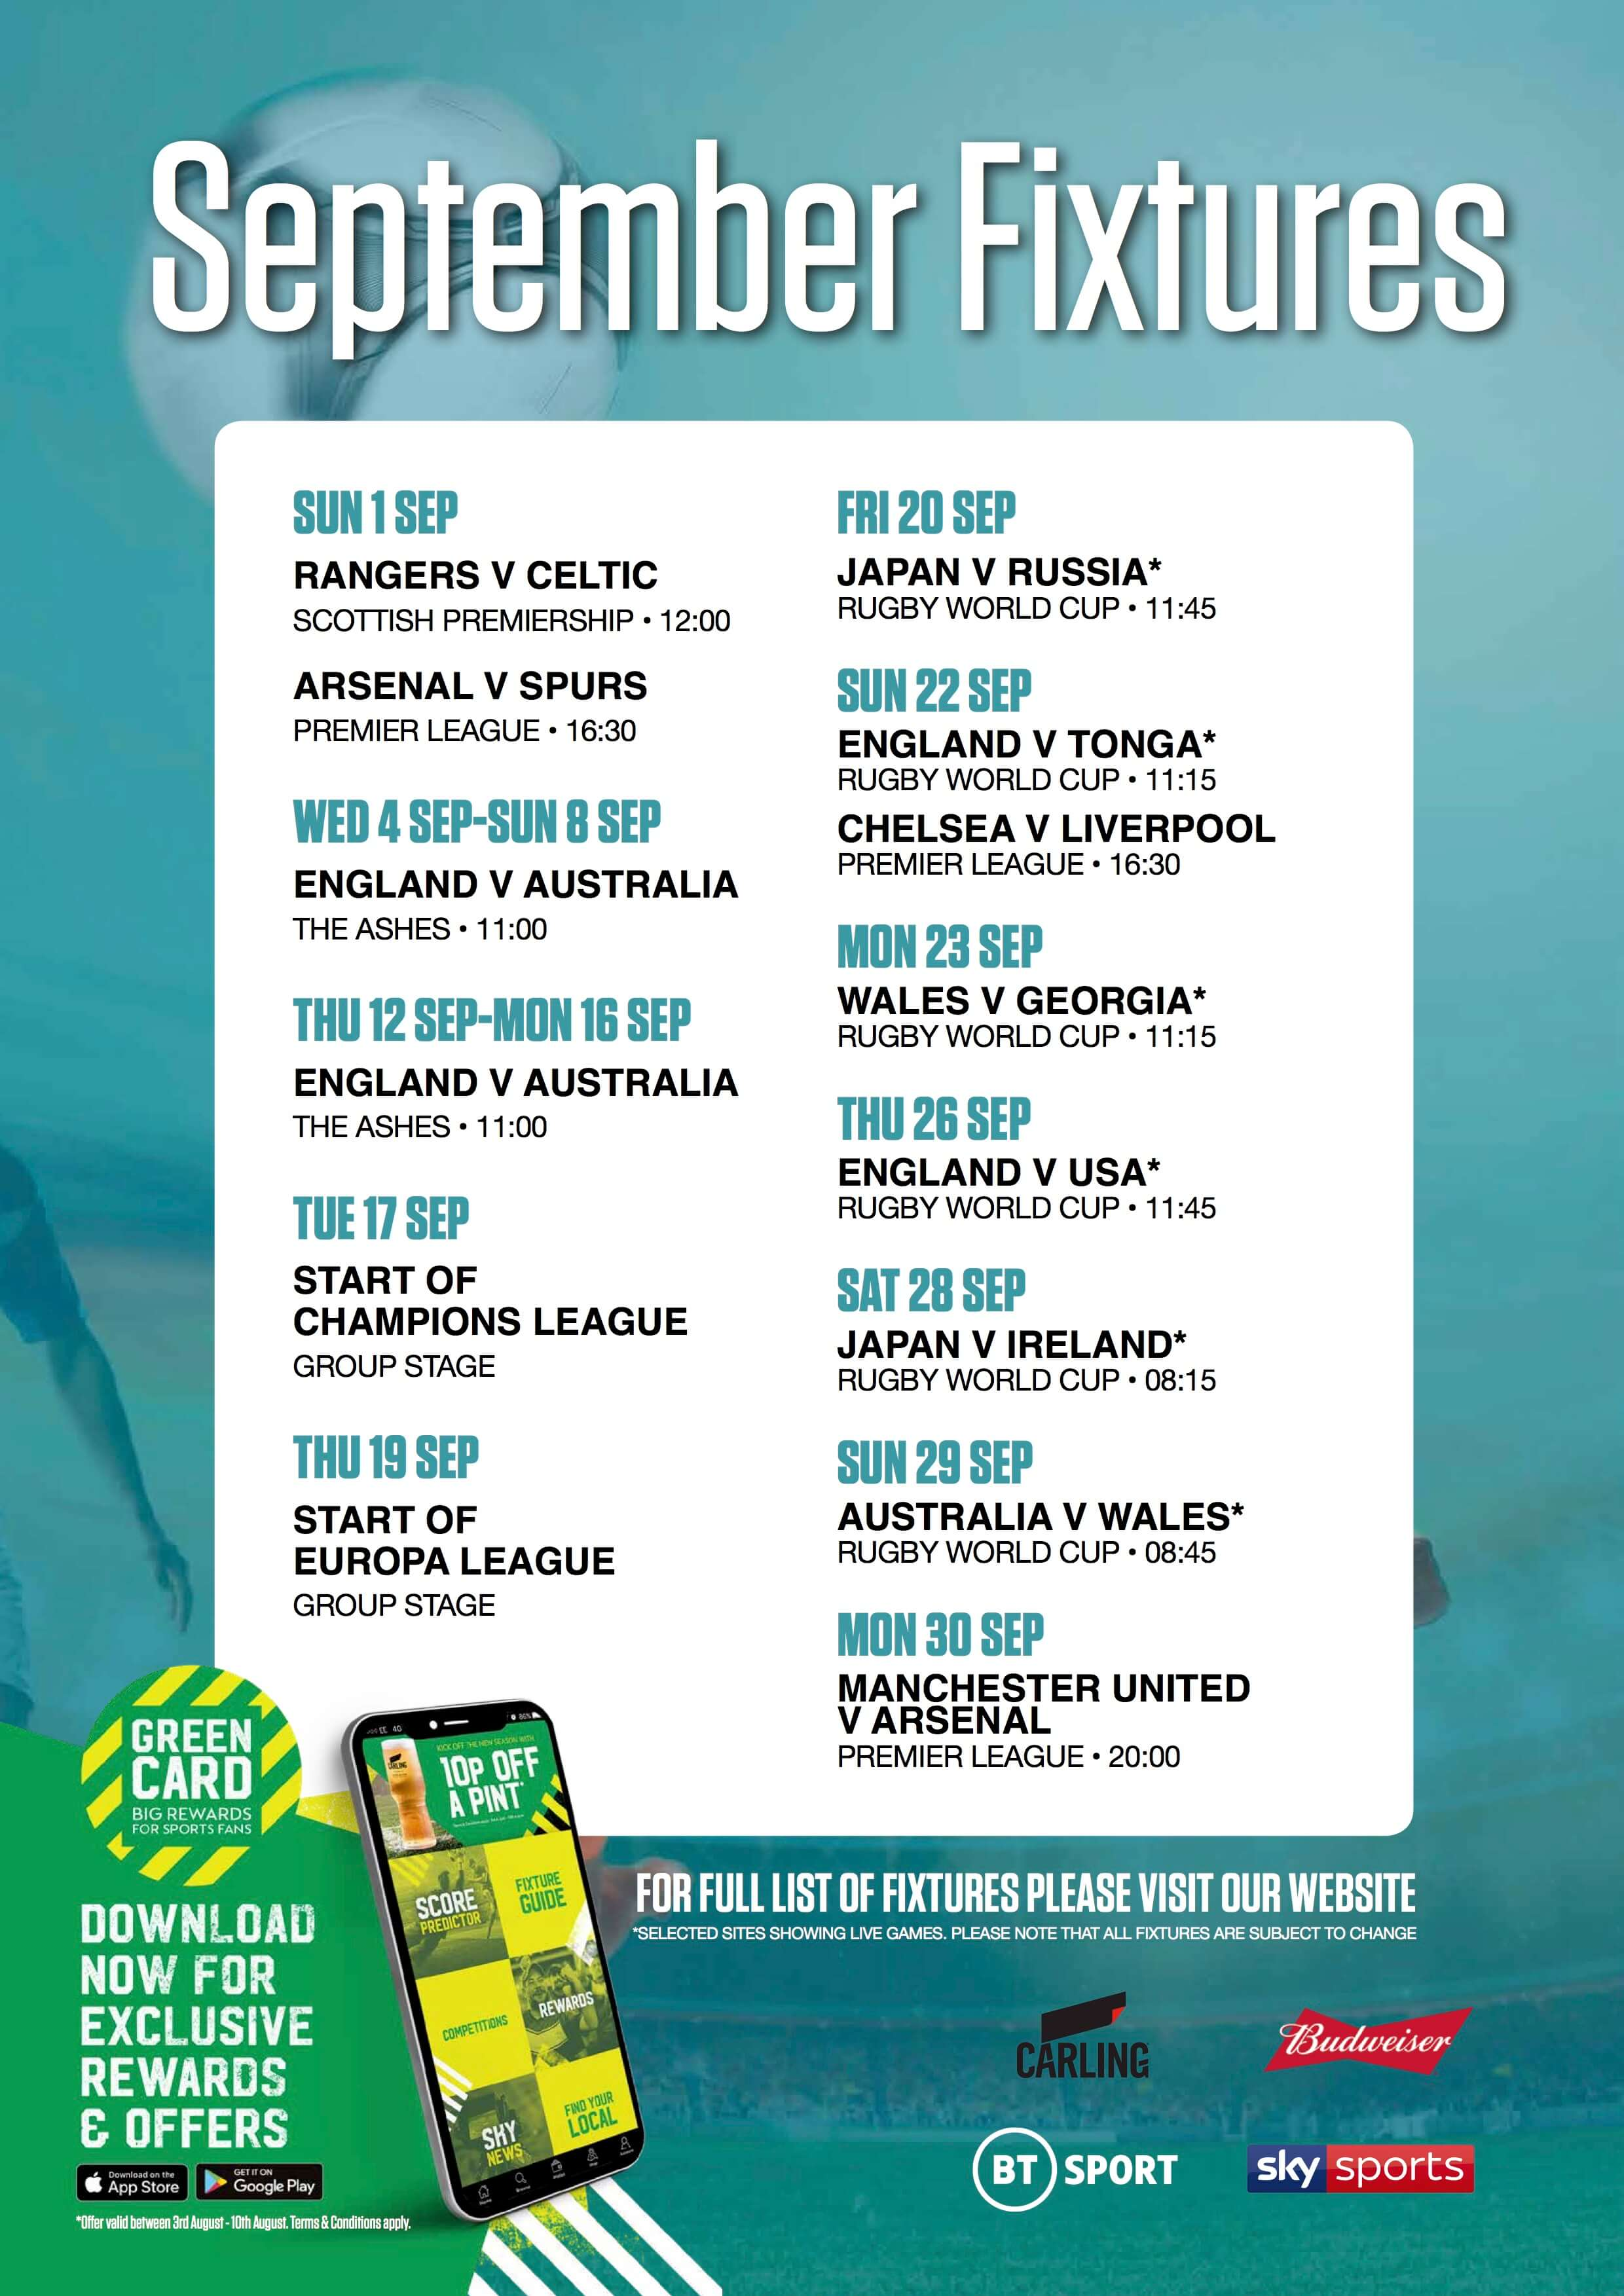 Live sports fixtures in January at The Treacle Mine